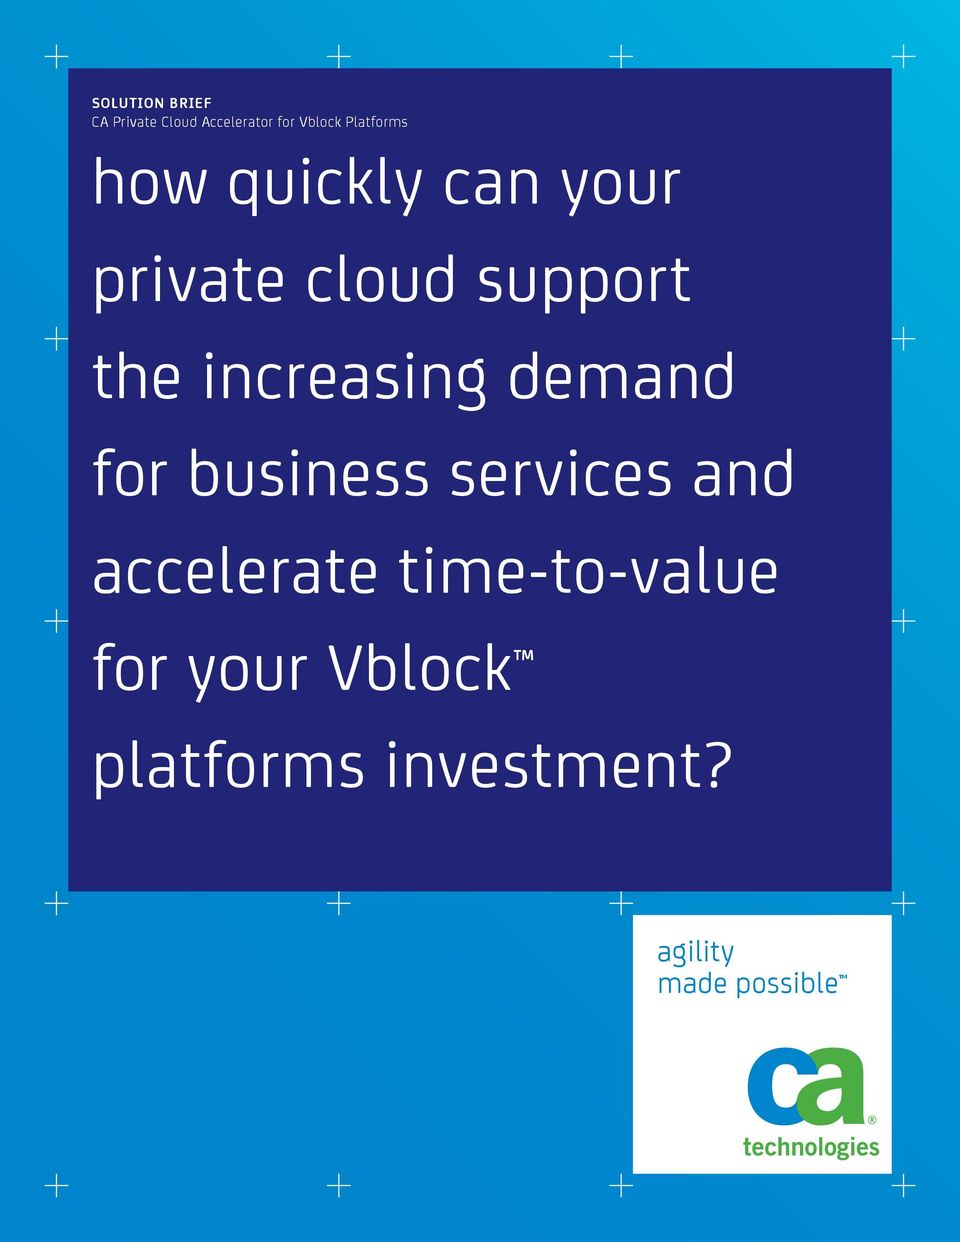 increasing demand for business services and accelerate